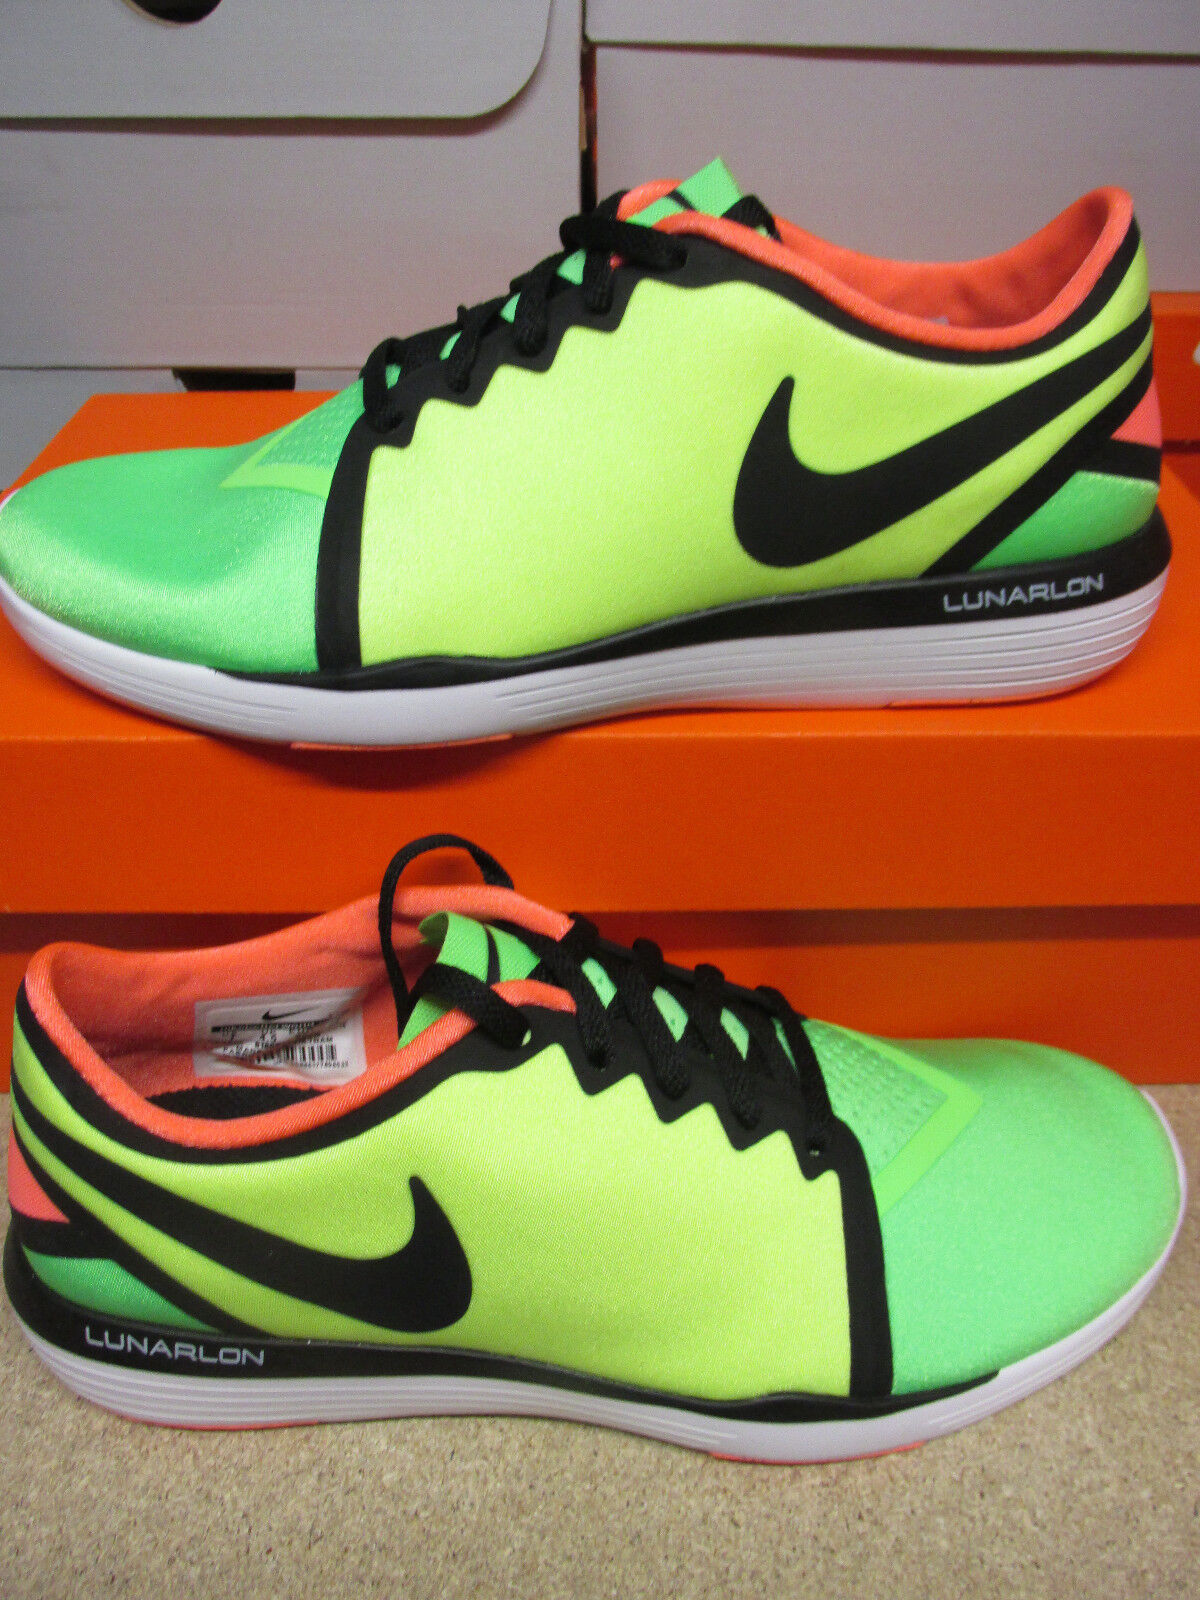 Nike Womens Lunar Sculpt Running Trainers 818062 300 Sneakers shoes